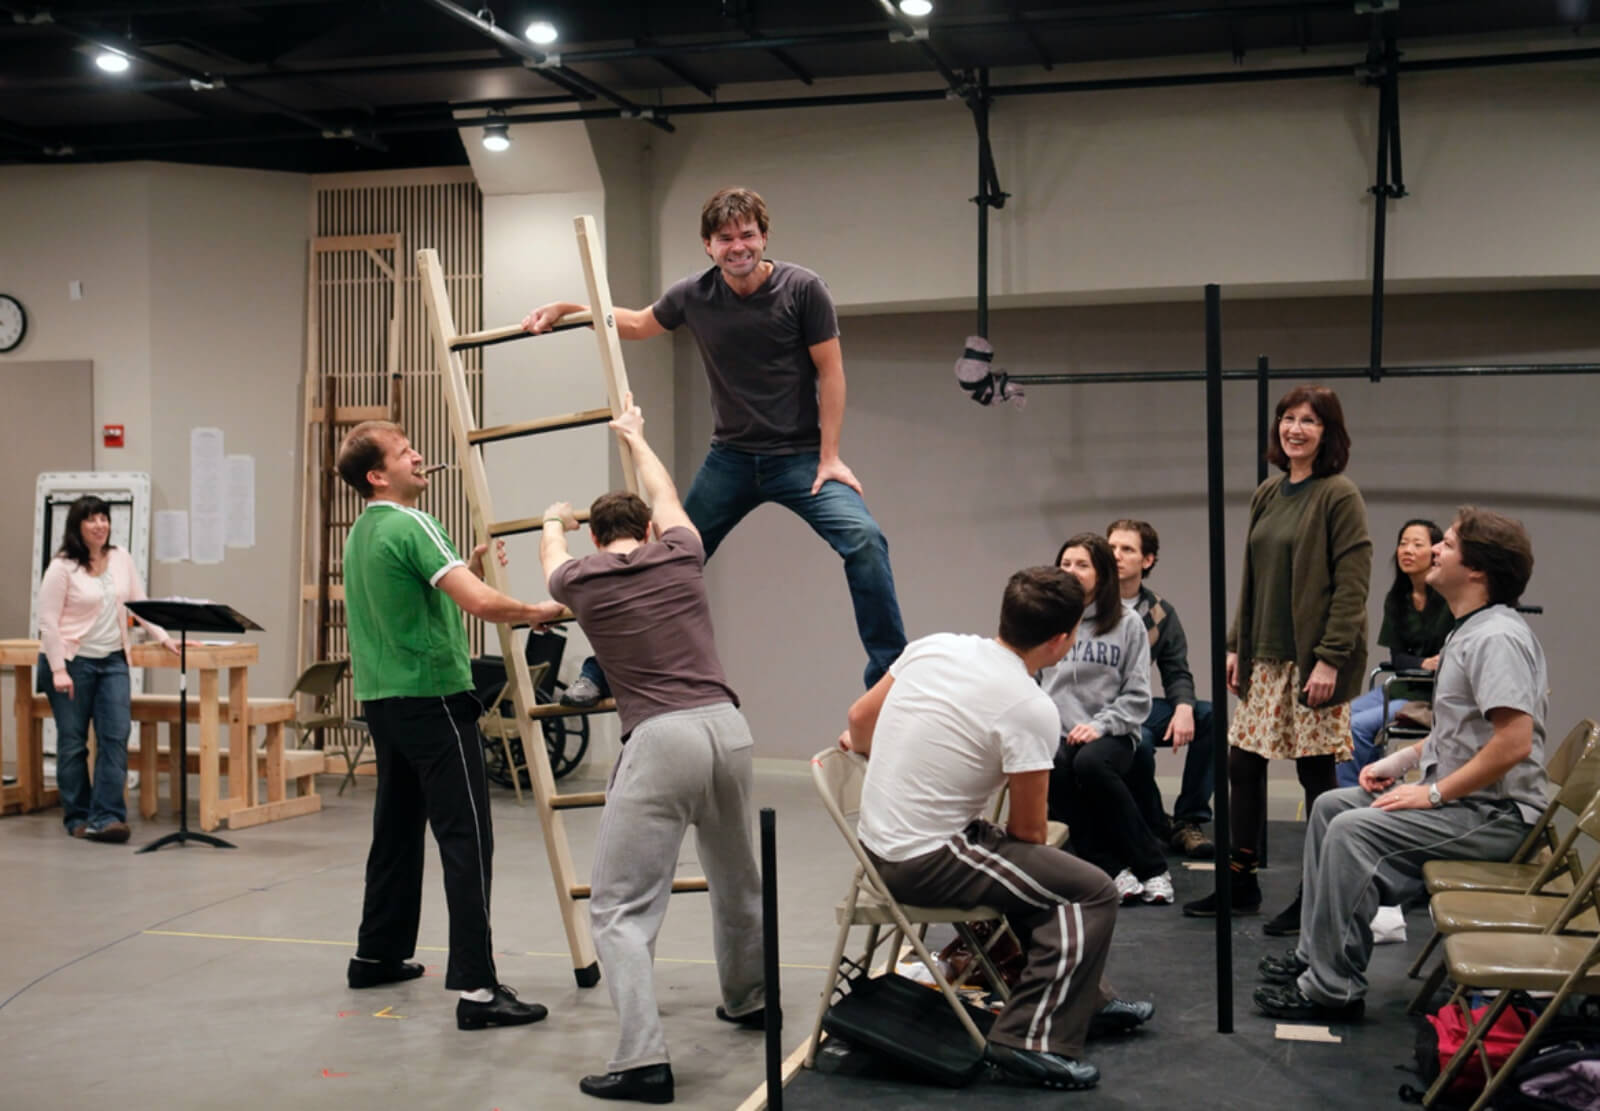 The company of Happiness works through a scene from the show involving a large ladder in a rehearsal studio